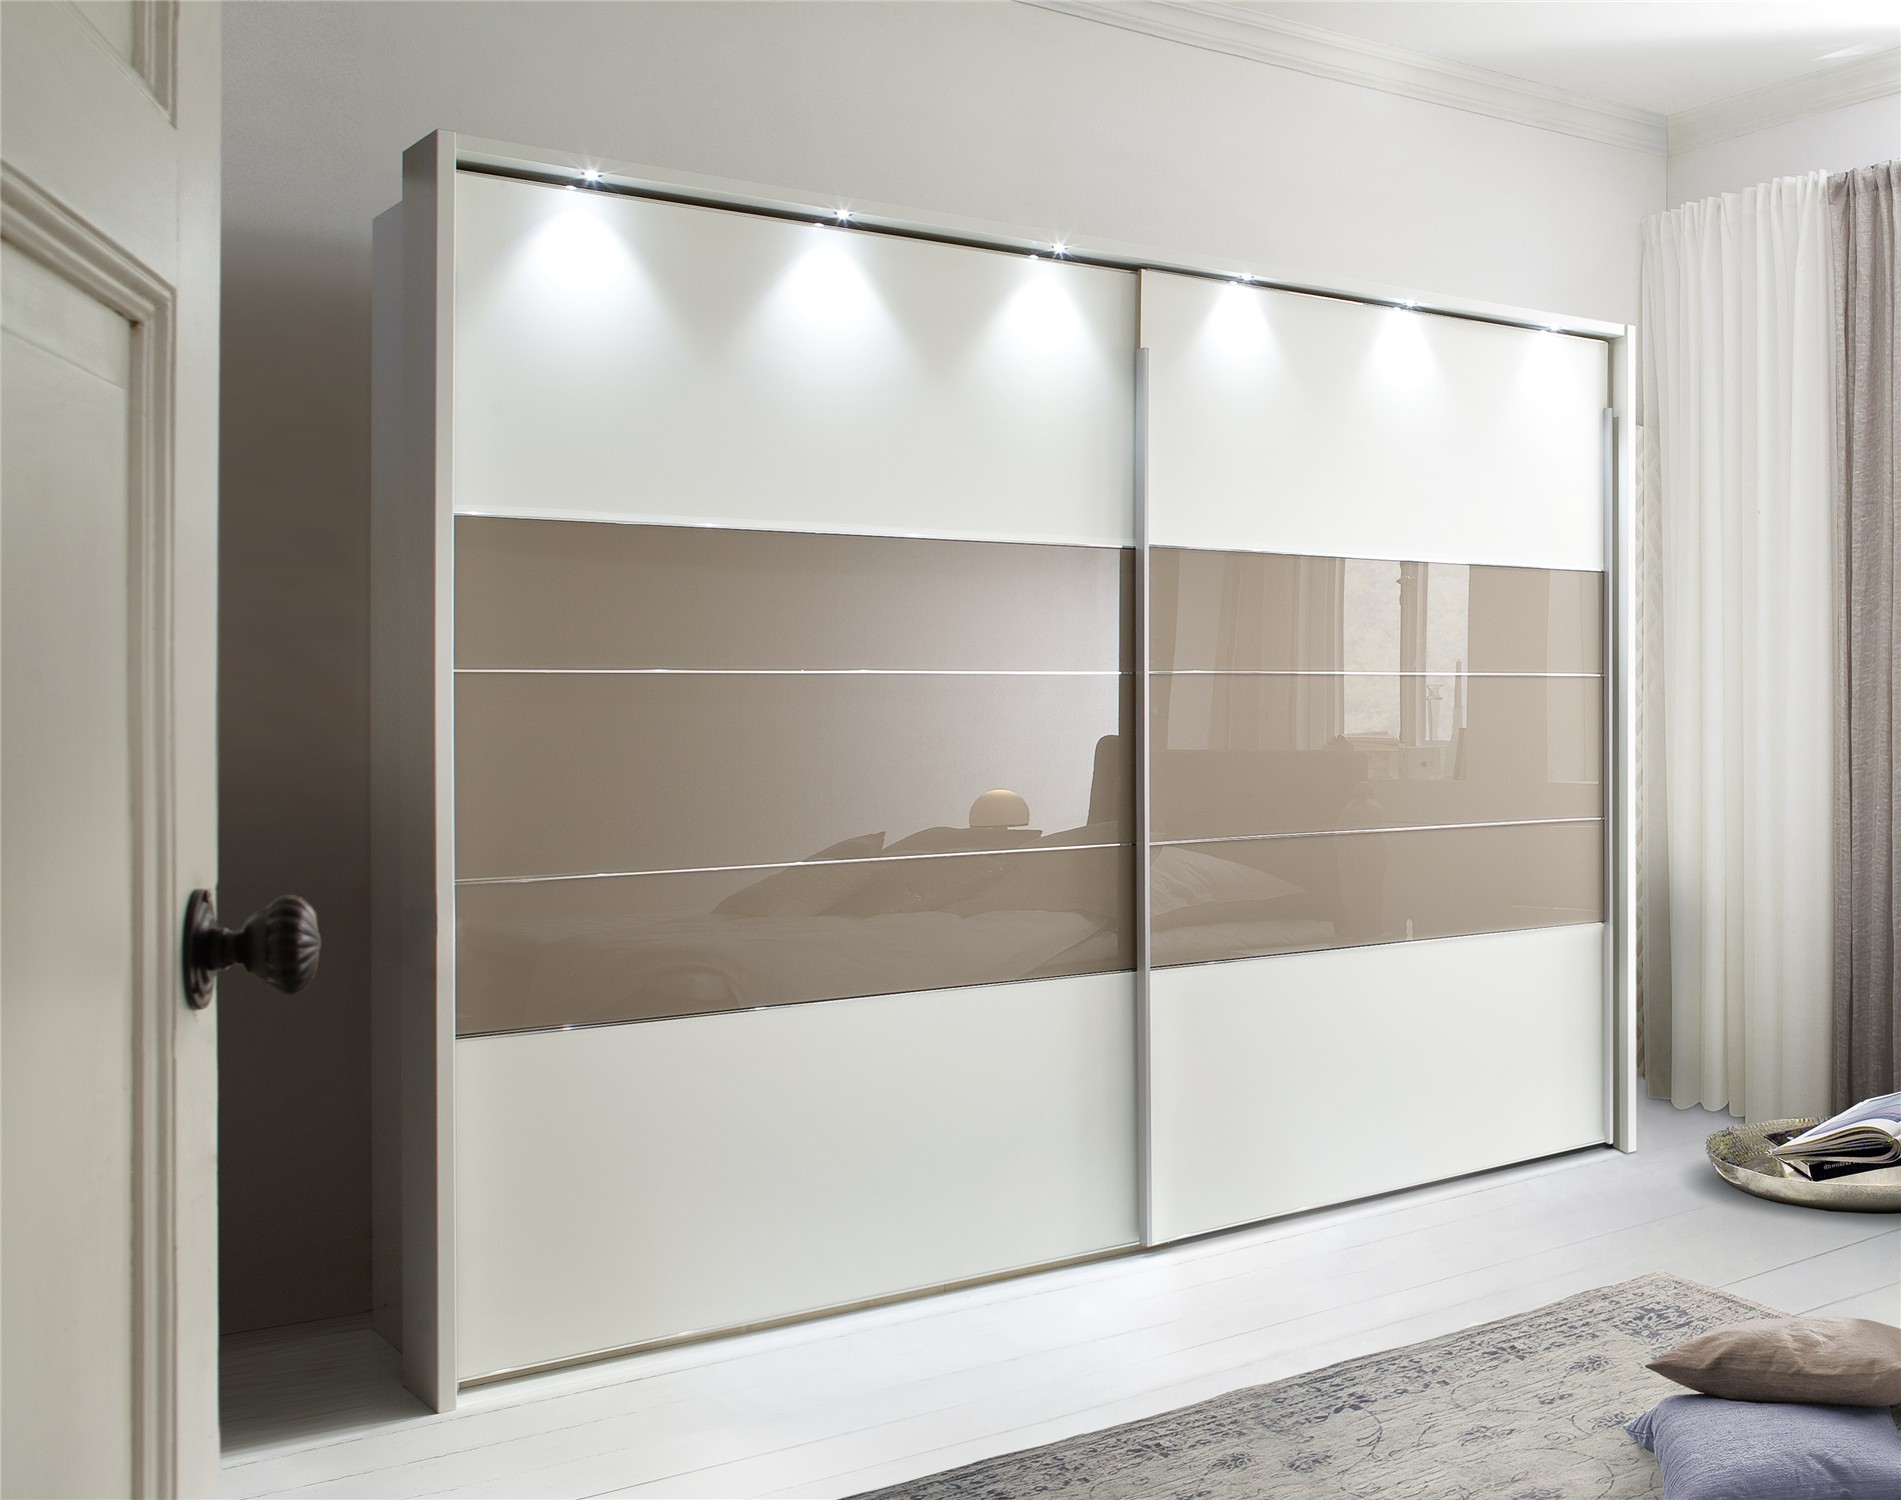 Ideas sliding door screen home depot home depot slider home sliding door screen home depot home depot slider home depot sliding doors planetlyrics Images